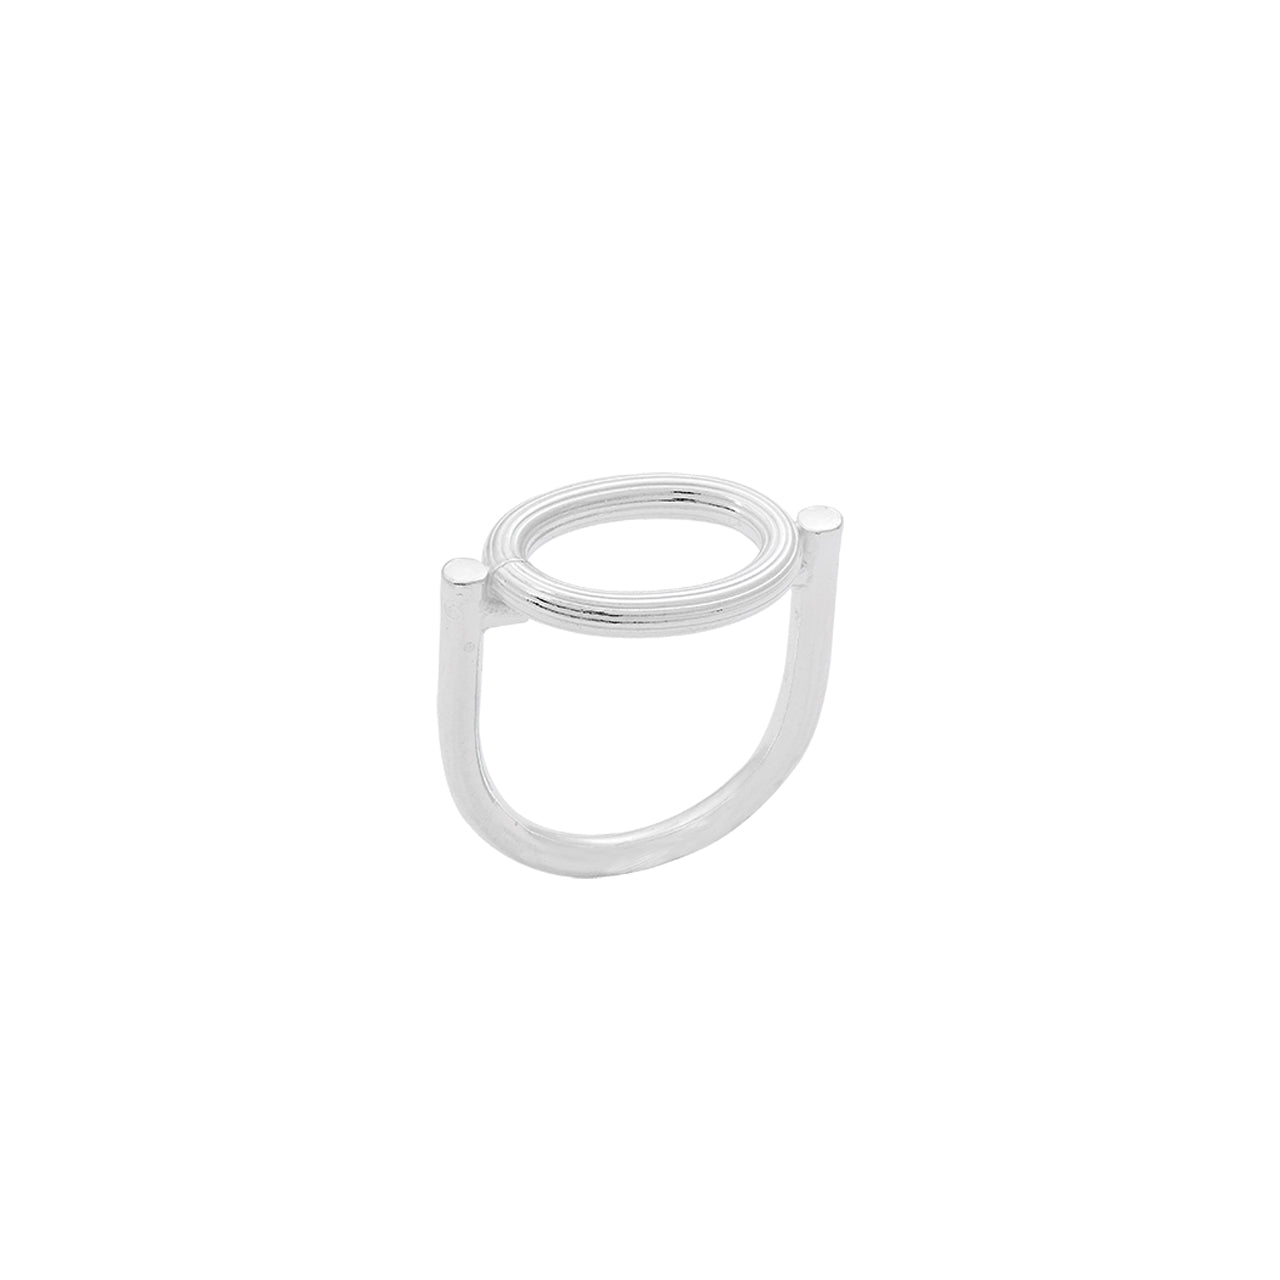 silver u-shaped engraved oval element ring